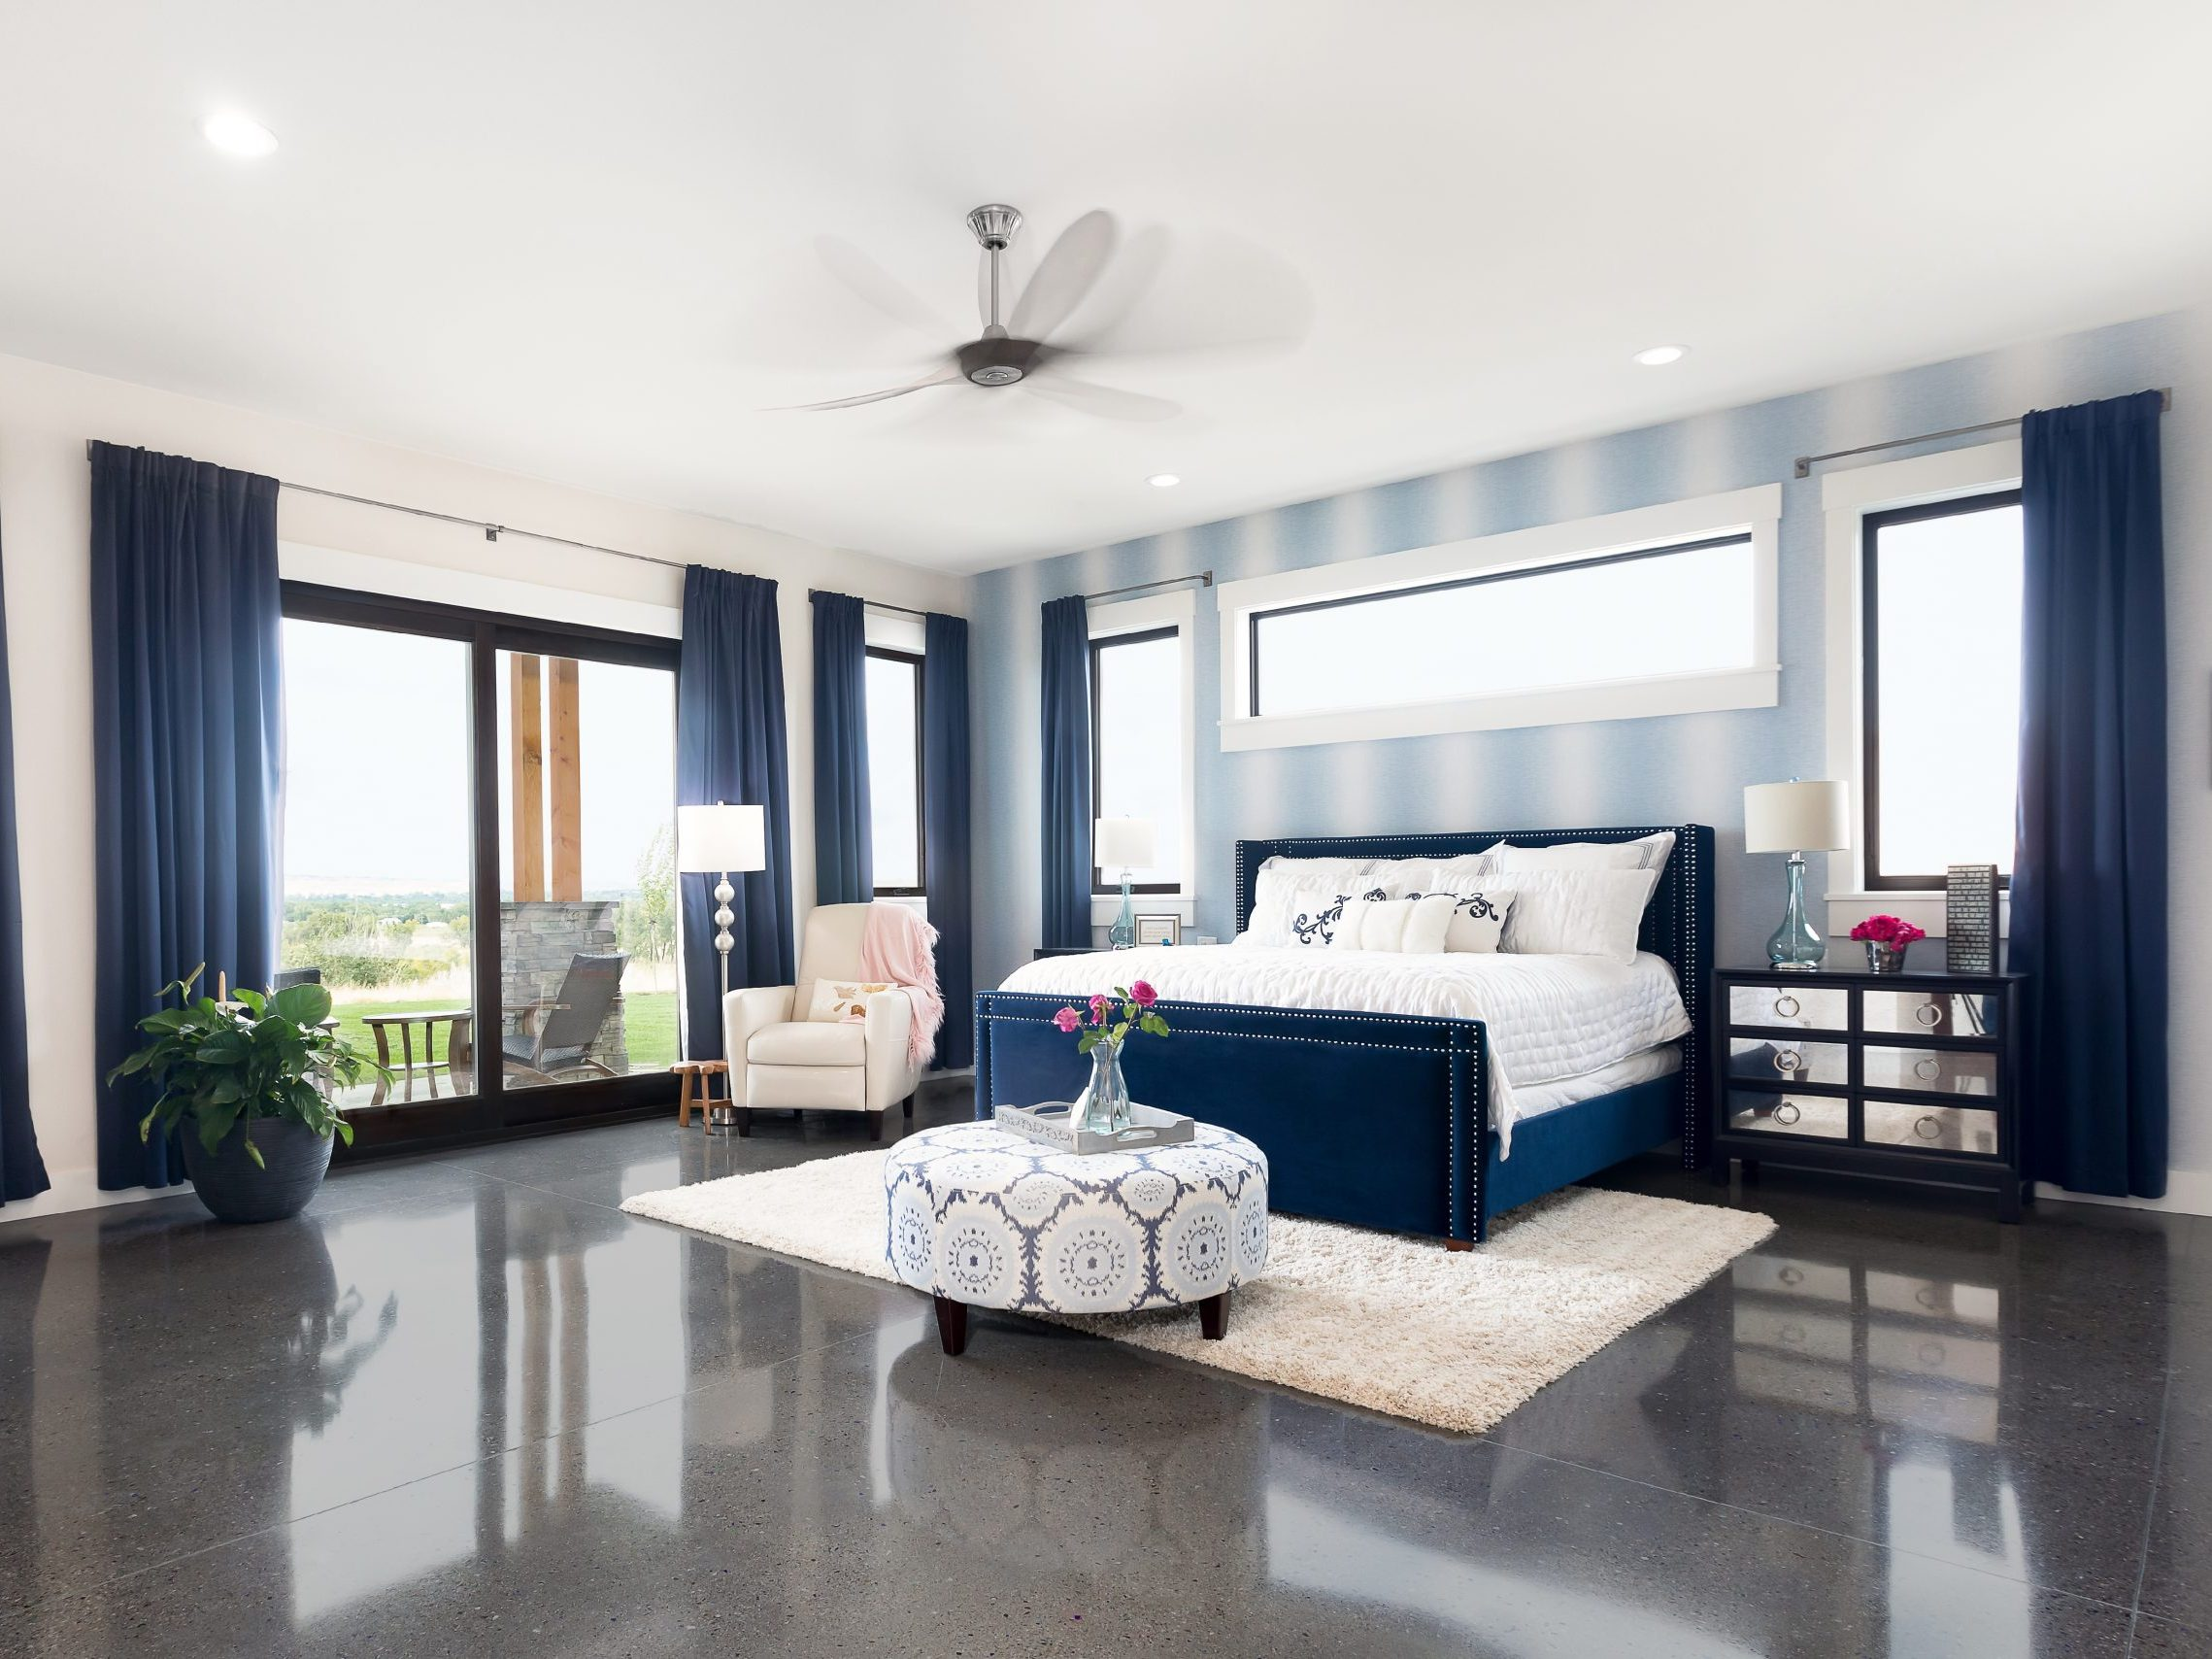 Beautiful Large Windows in Bedroom with Blue Curtains